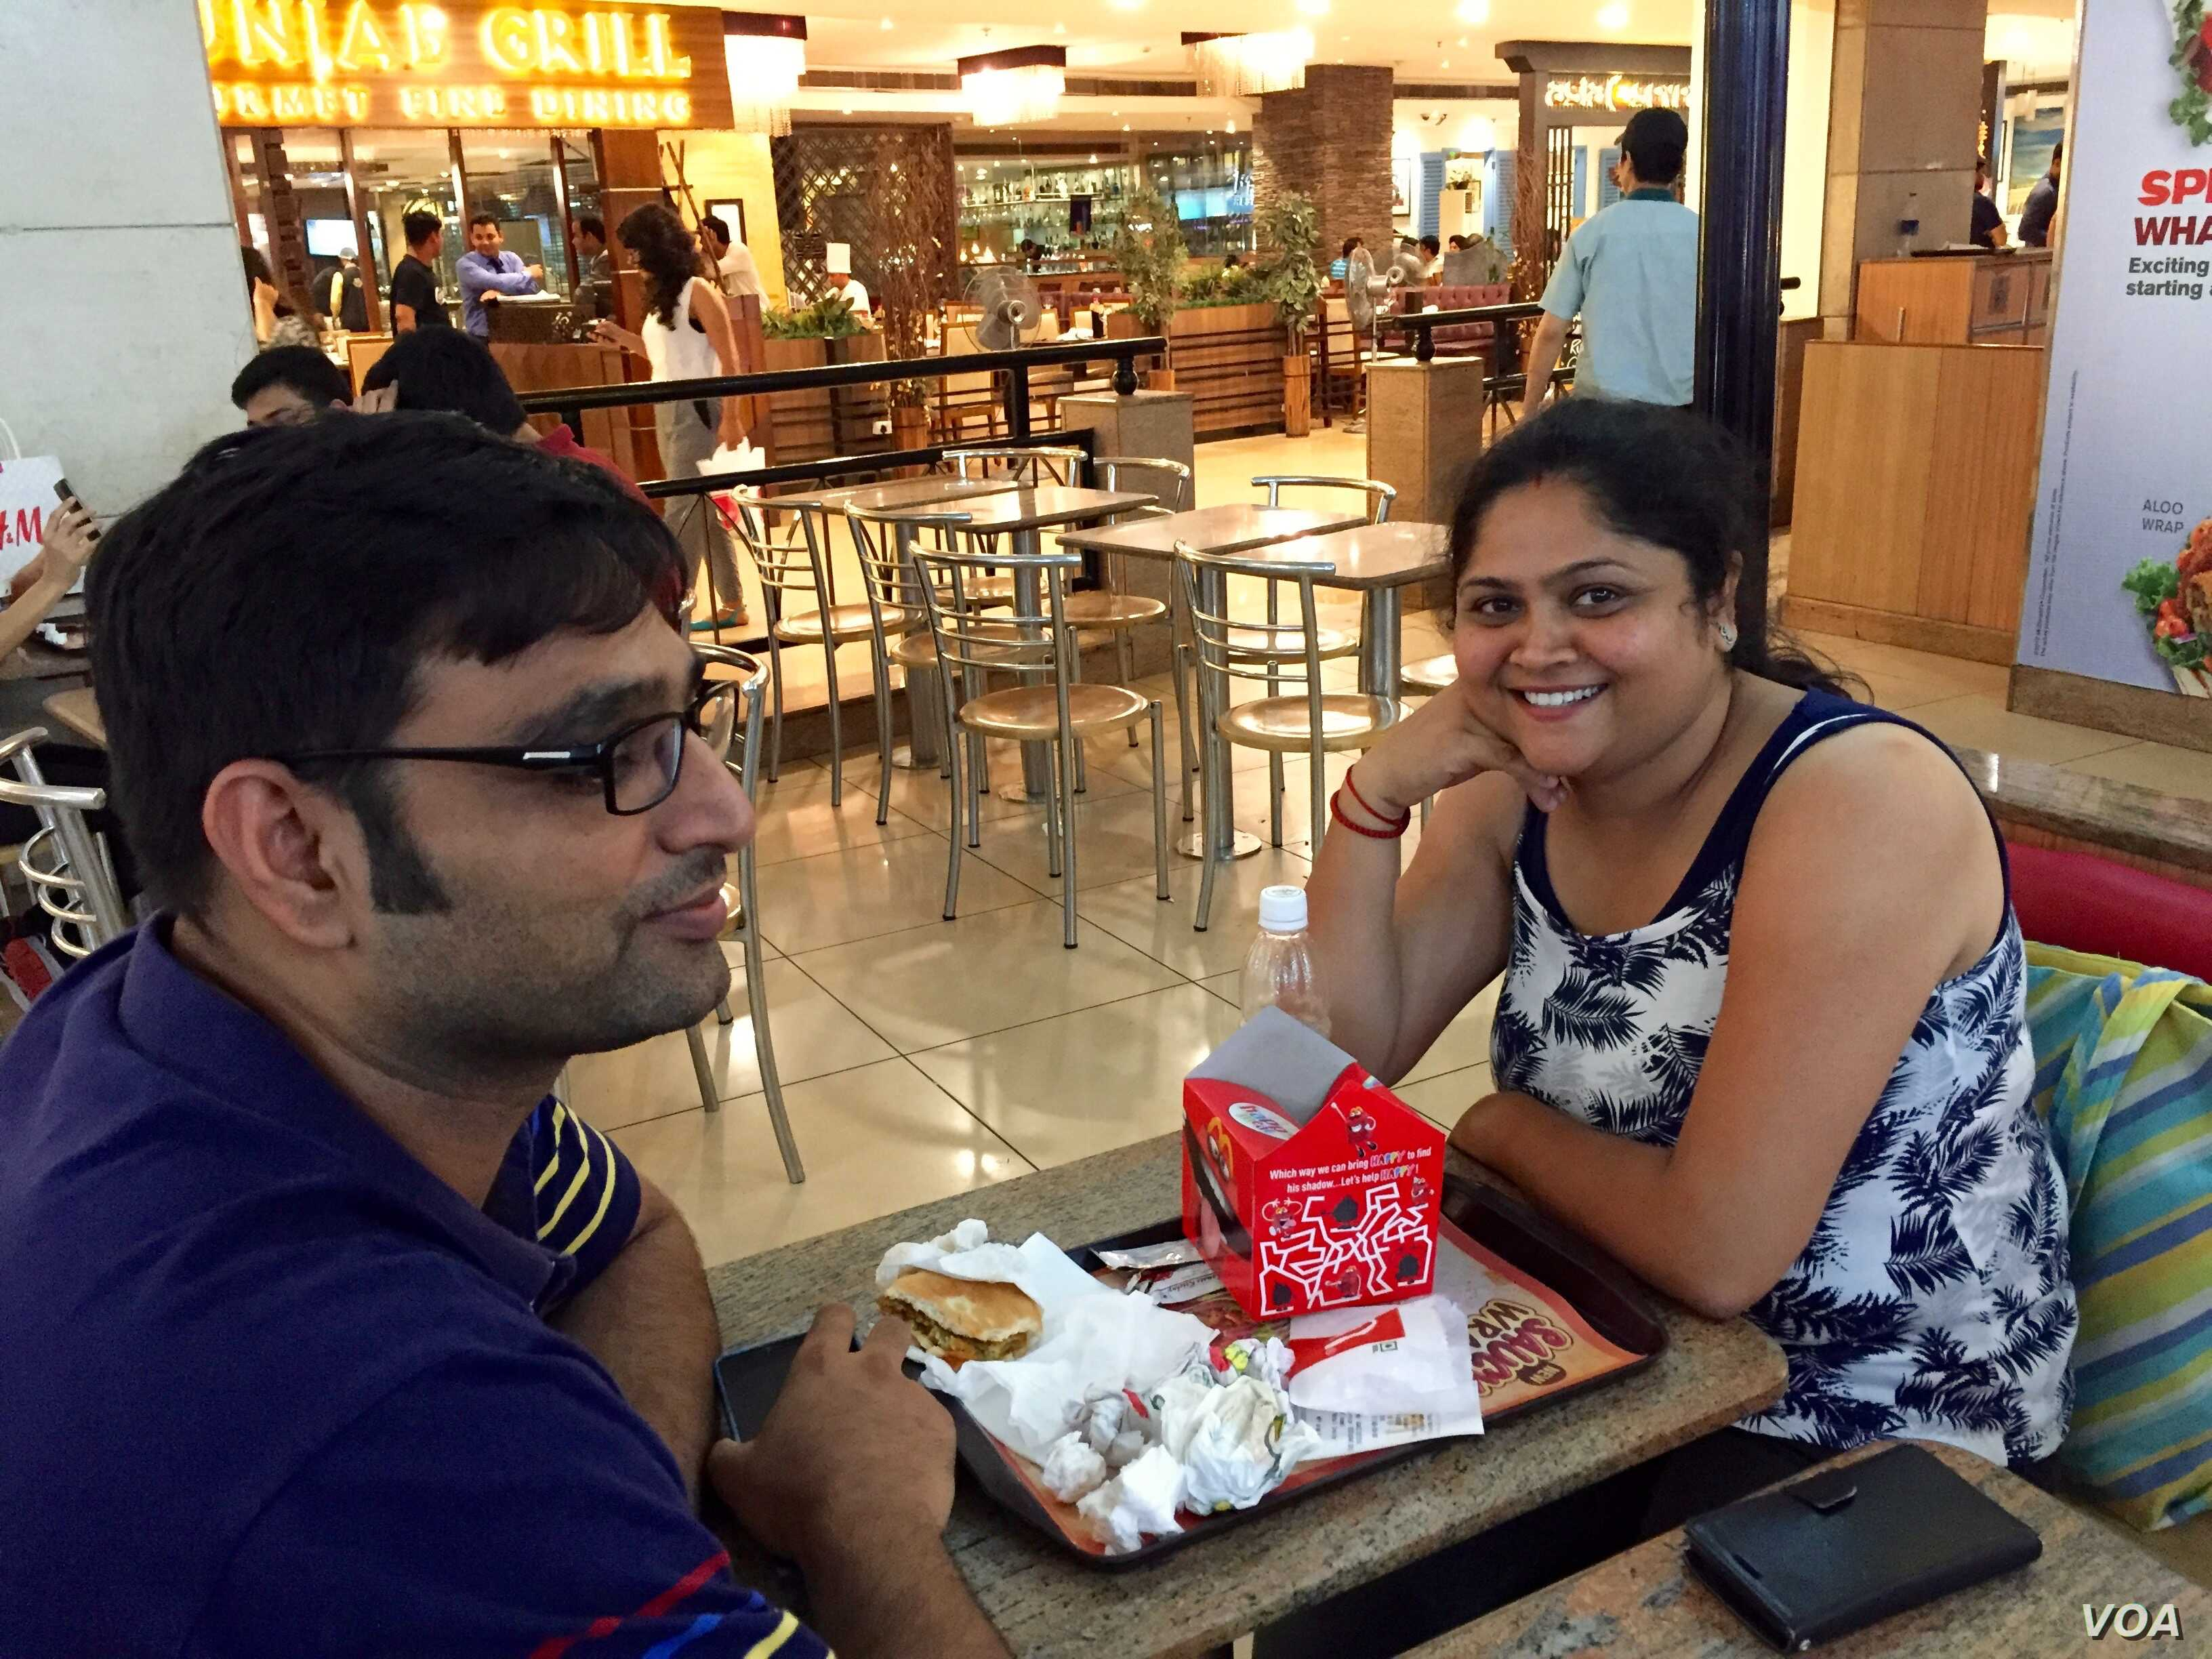 I-T engineer Gaurav Singh wants the government to focus on education and awareness instead of taxing fast food.